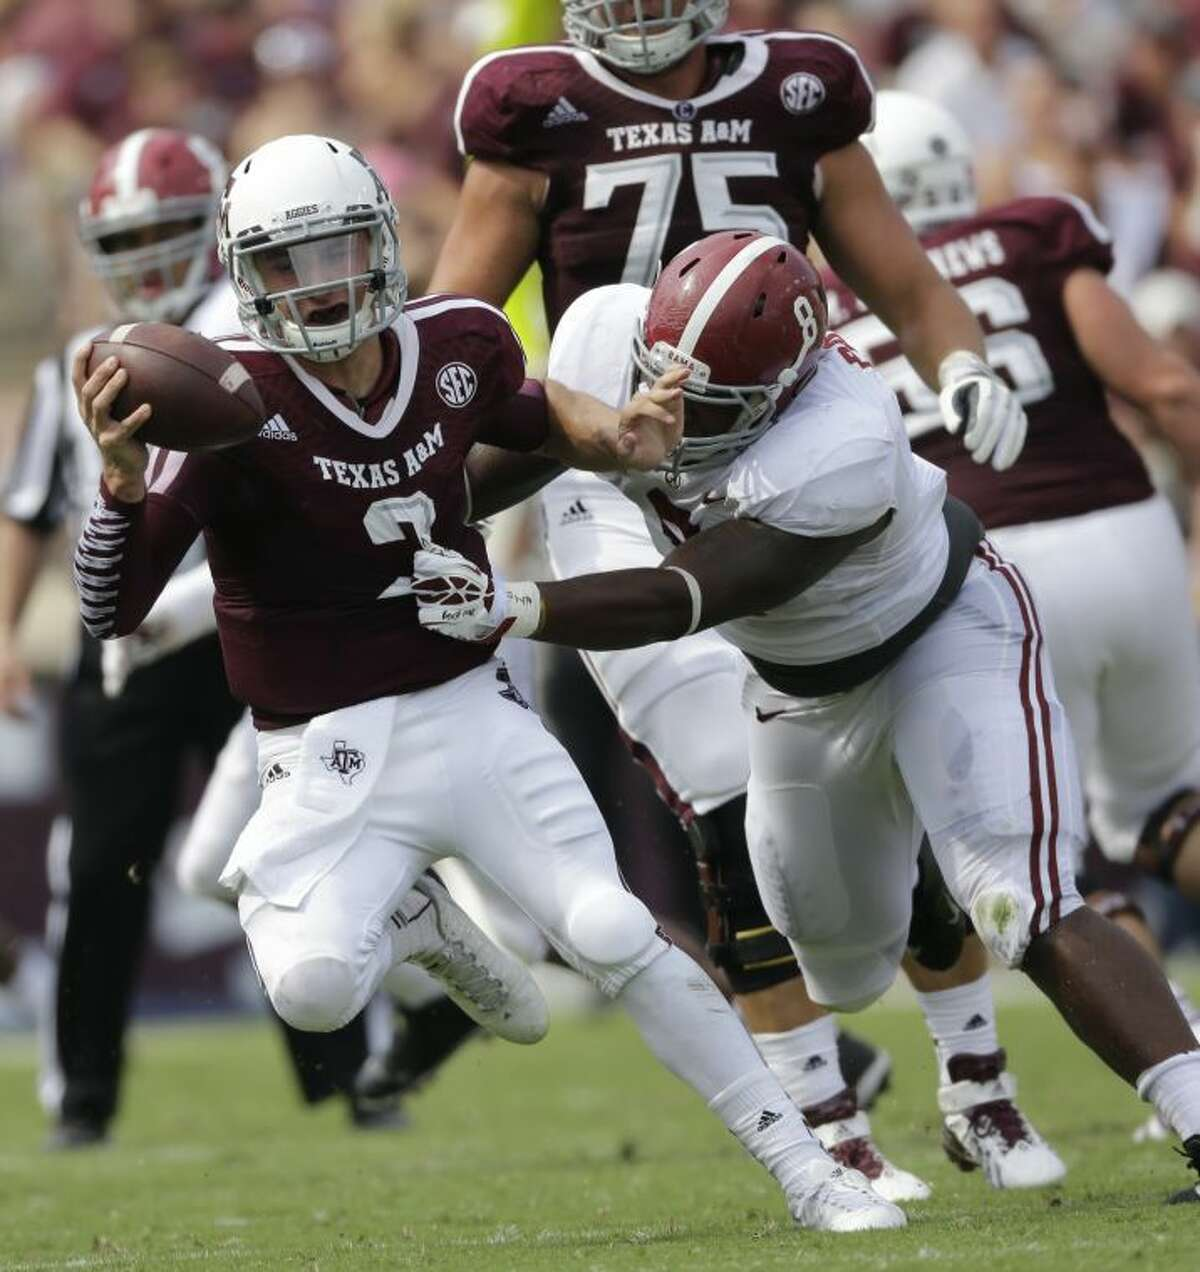 Texas A&M quarterback Johnny Manziel (2) escapes from Alabama defensive lineman Jeoffrey Pagan (8) during the second quarter of an NCAA college football game Saturday, Sept. 14, 2013 in College Station, Texas. (AP Photo/David J. Phillip)